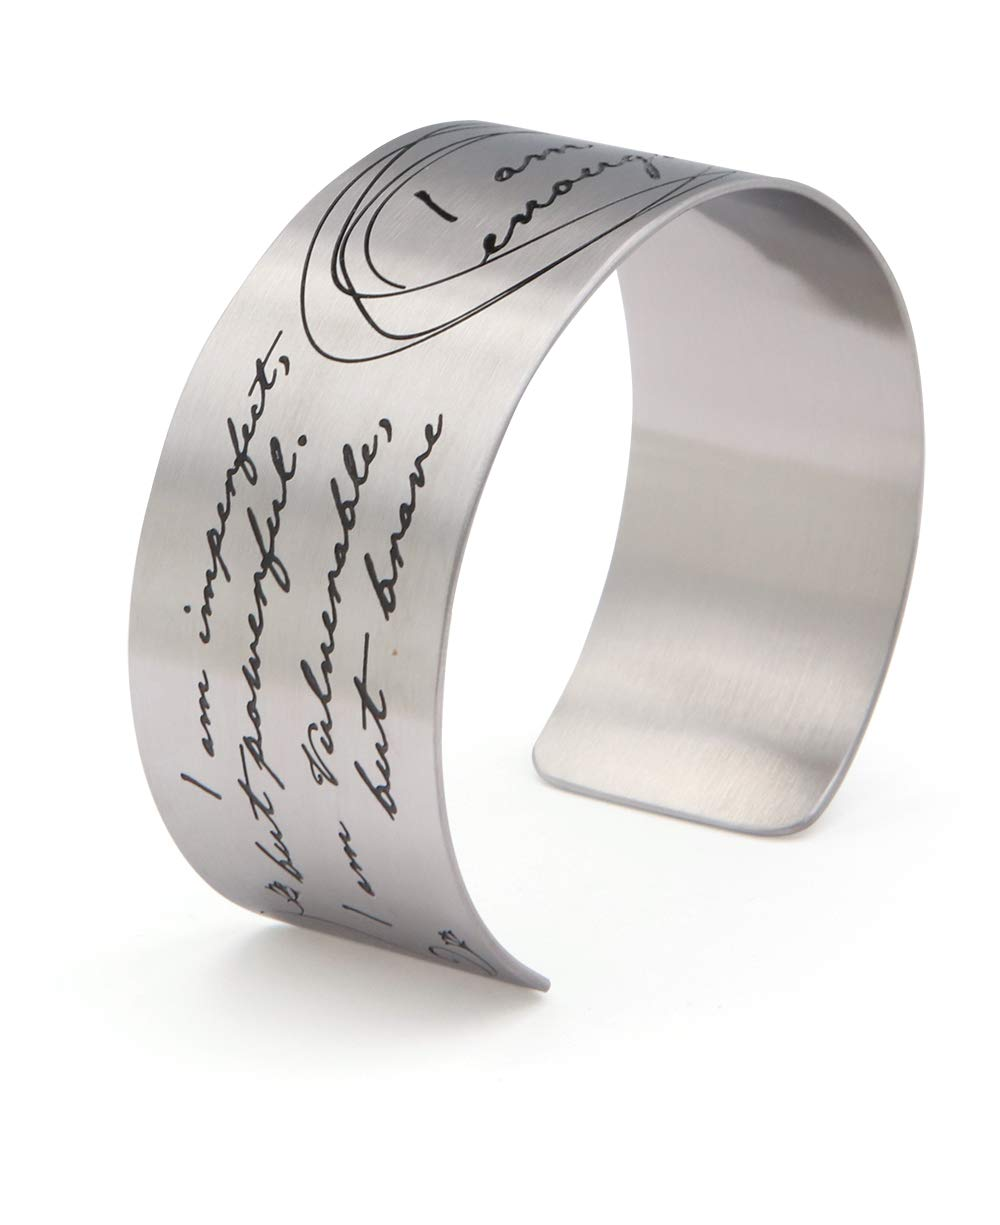 Vera Viva I Am Enough Artistic Calligraphy Adjustable Cuff Bracelet | Made of Stainless Steel | Open Designs Fit Most Wrist Size | Cuff Size 6.5 Inches by Vera Viva (Image #2)